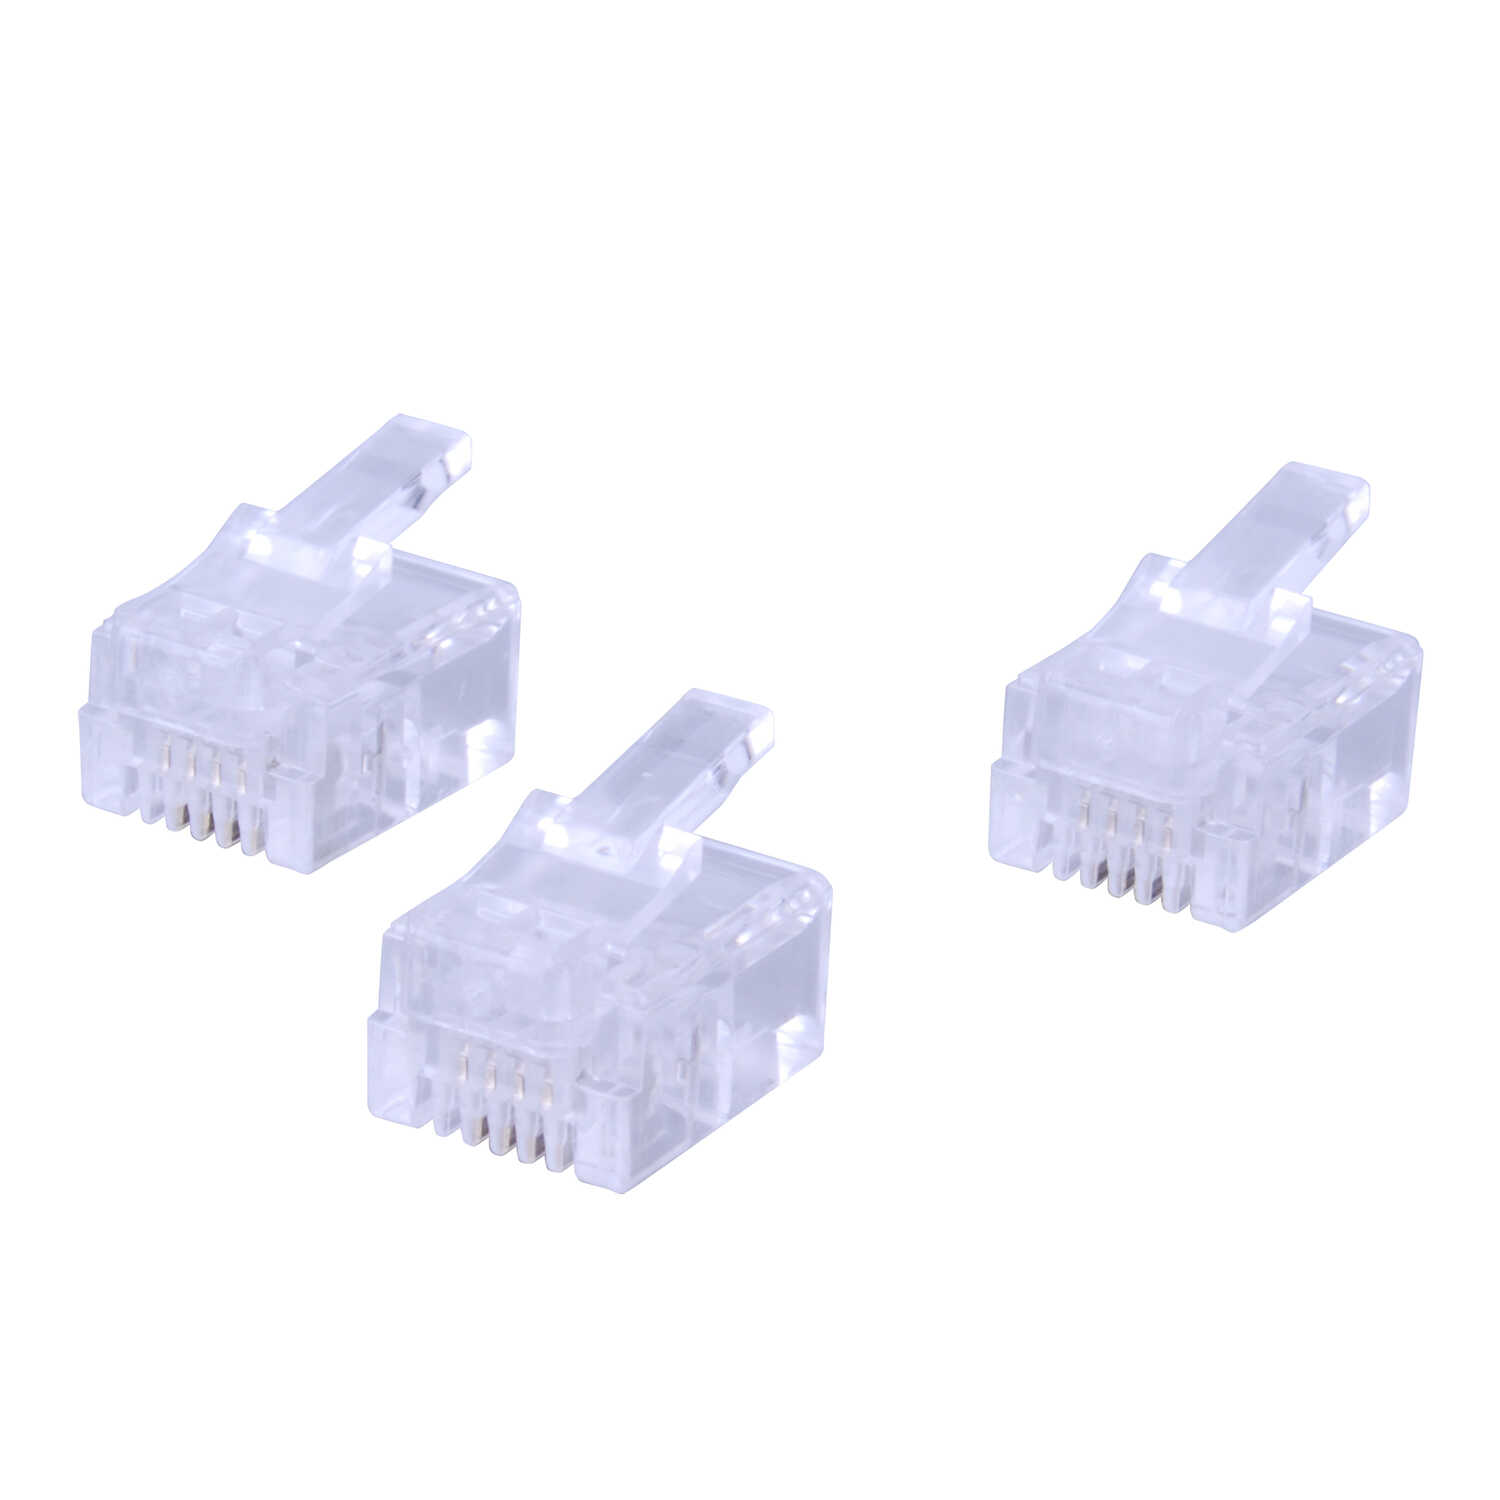 Monster Cable  Telephone Rj11 Modular Crimp Plug Connectors